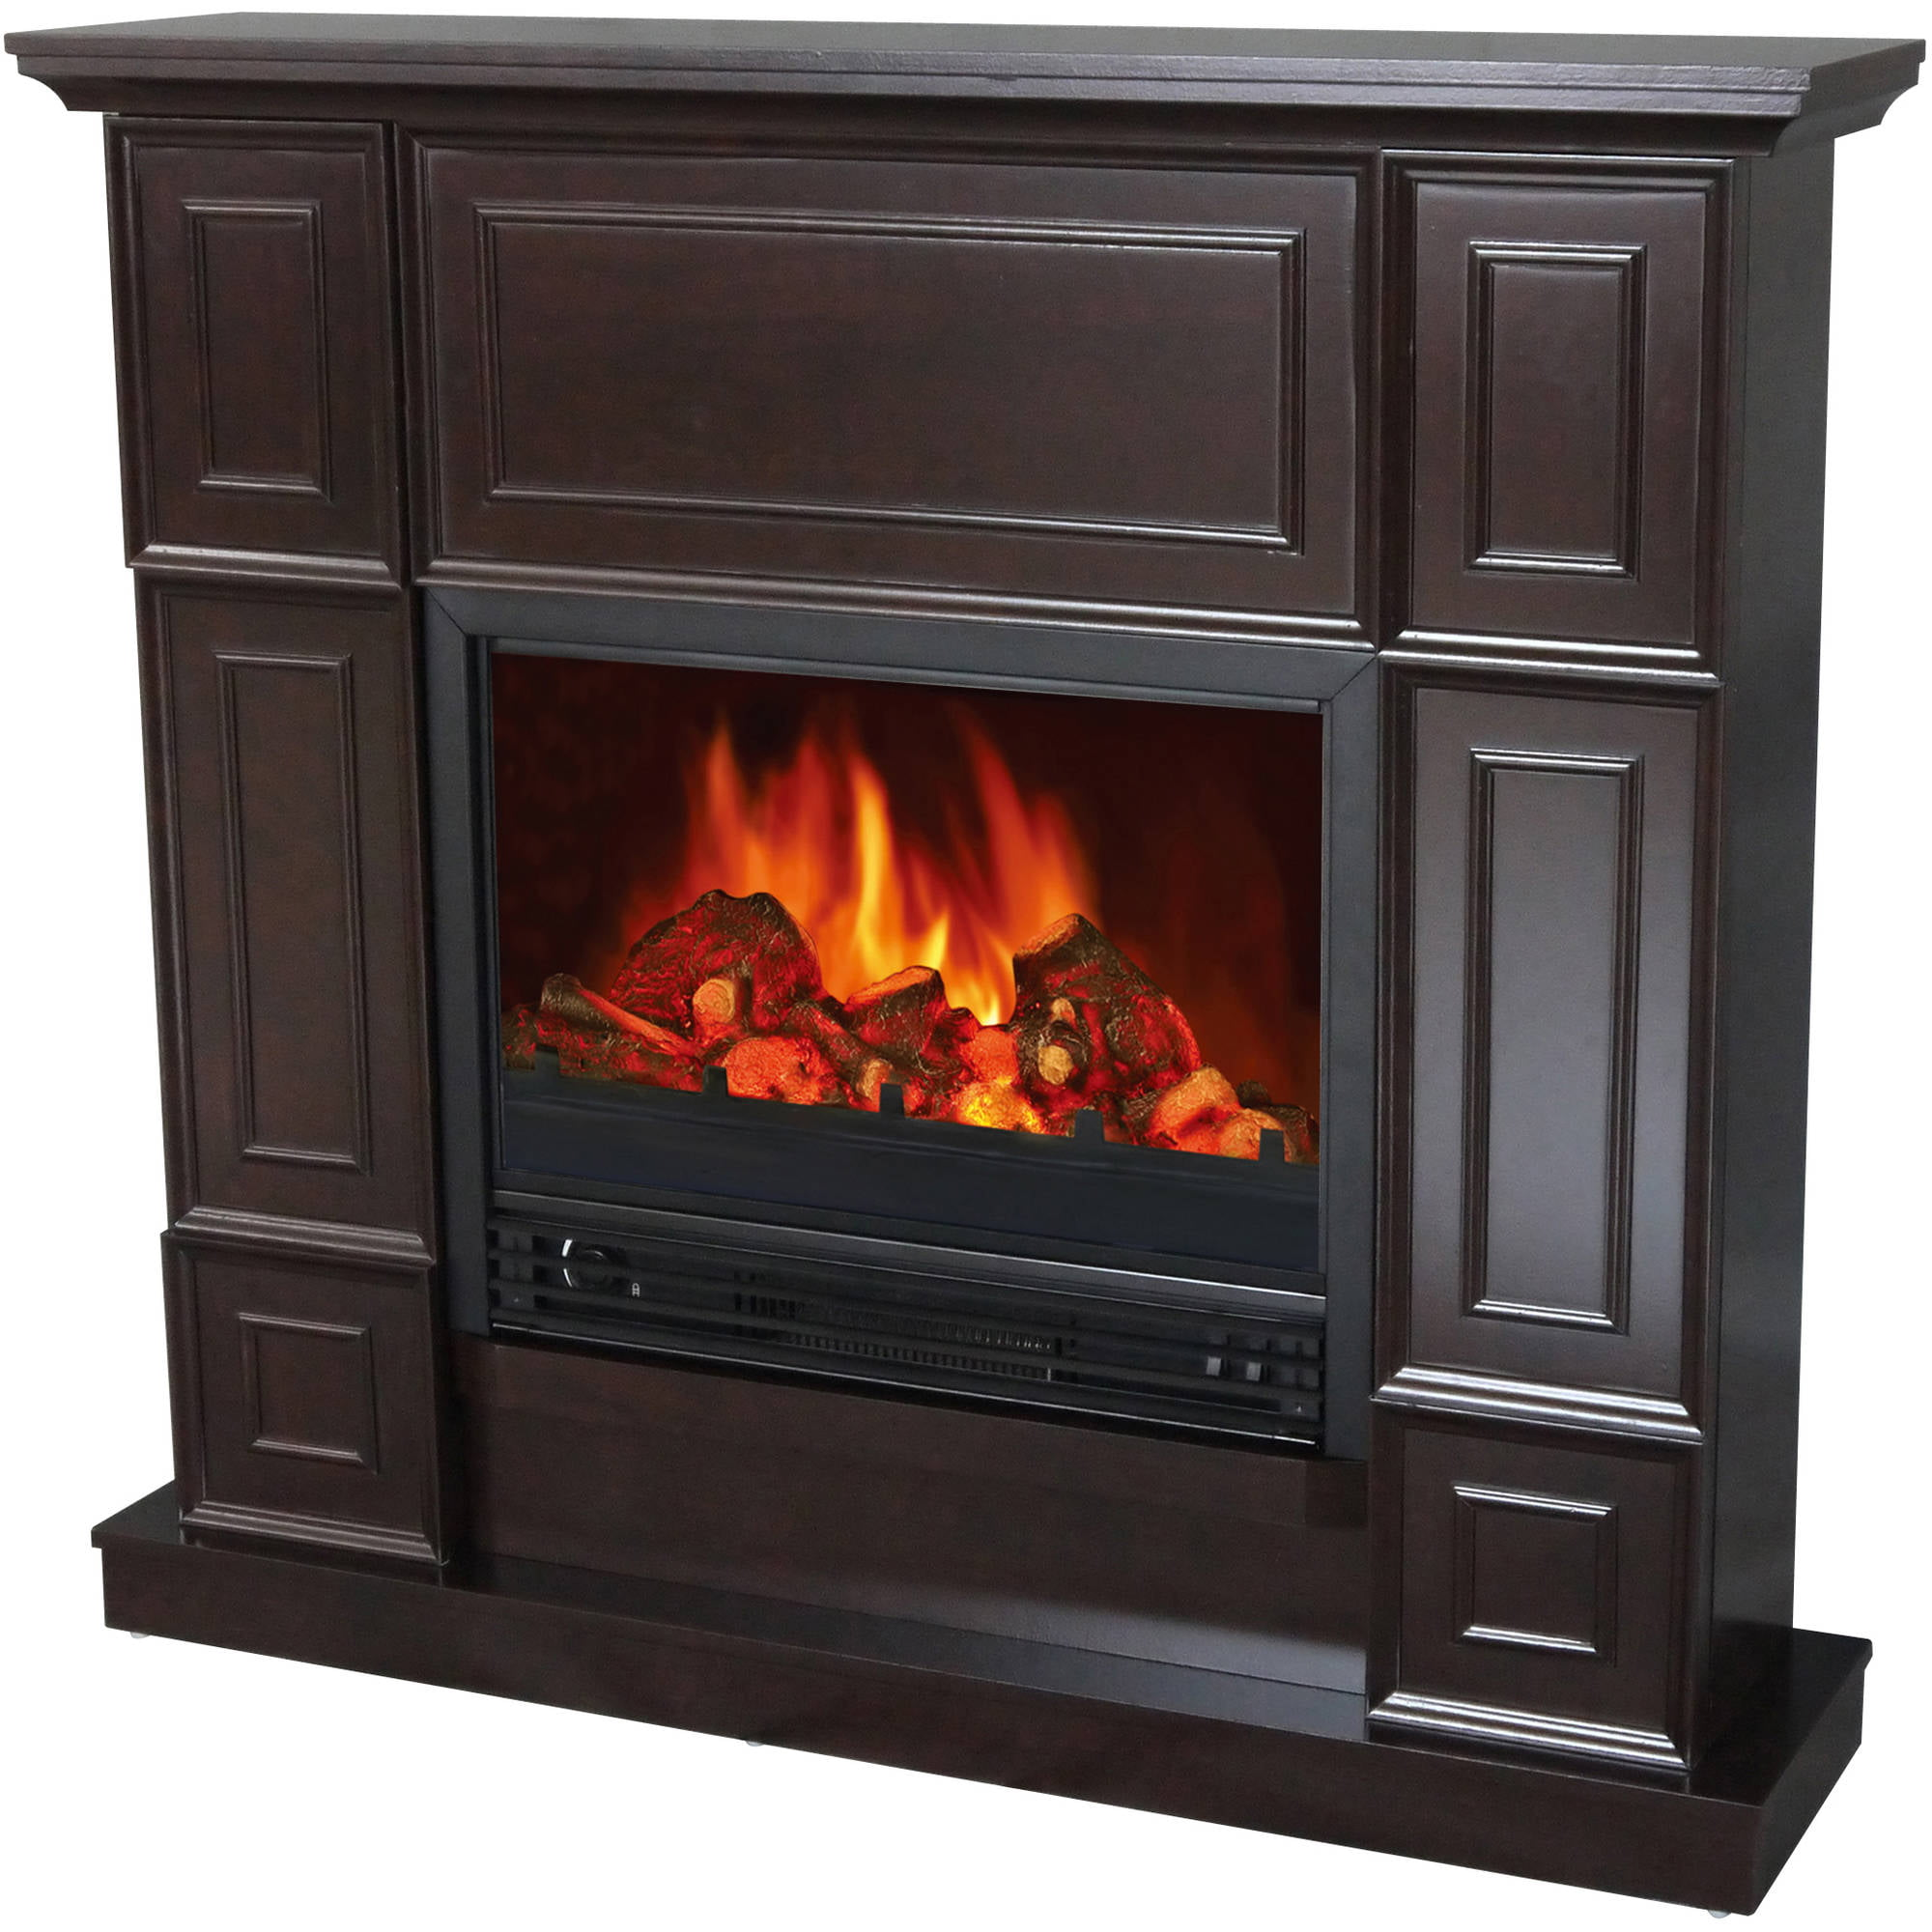 Lifezone ElectricInfrared Media Fireplace Heater, Black - Walmart.com